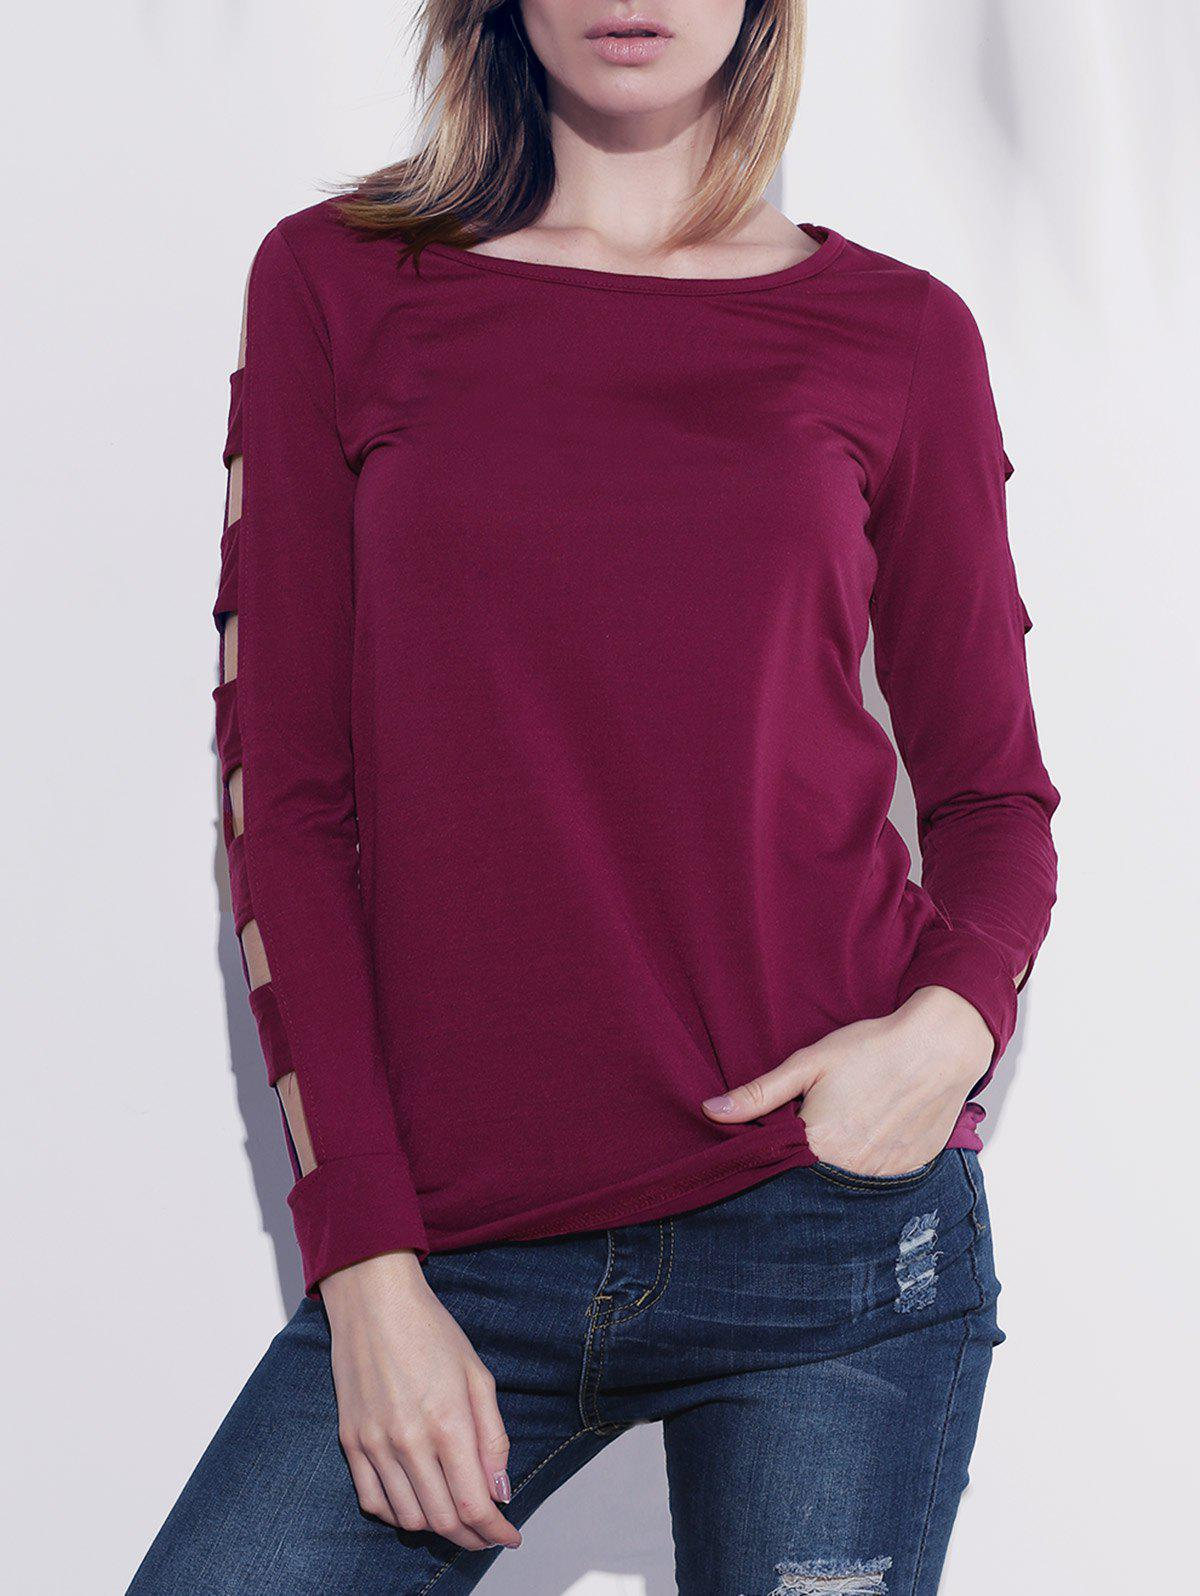 Elegant Women's Solid Color Cut Out T-Shirt For Women - RED S